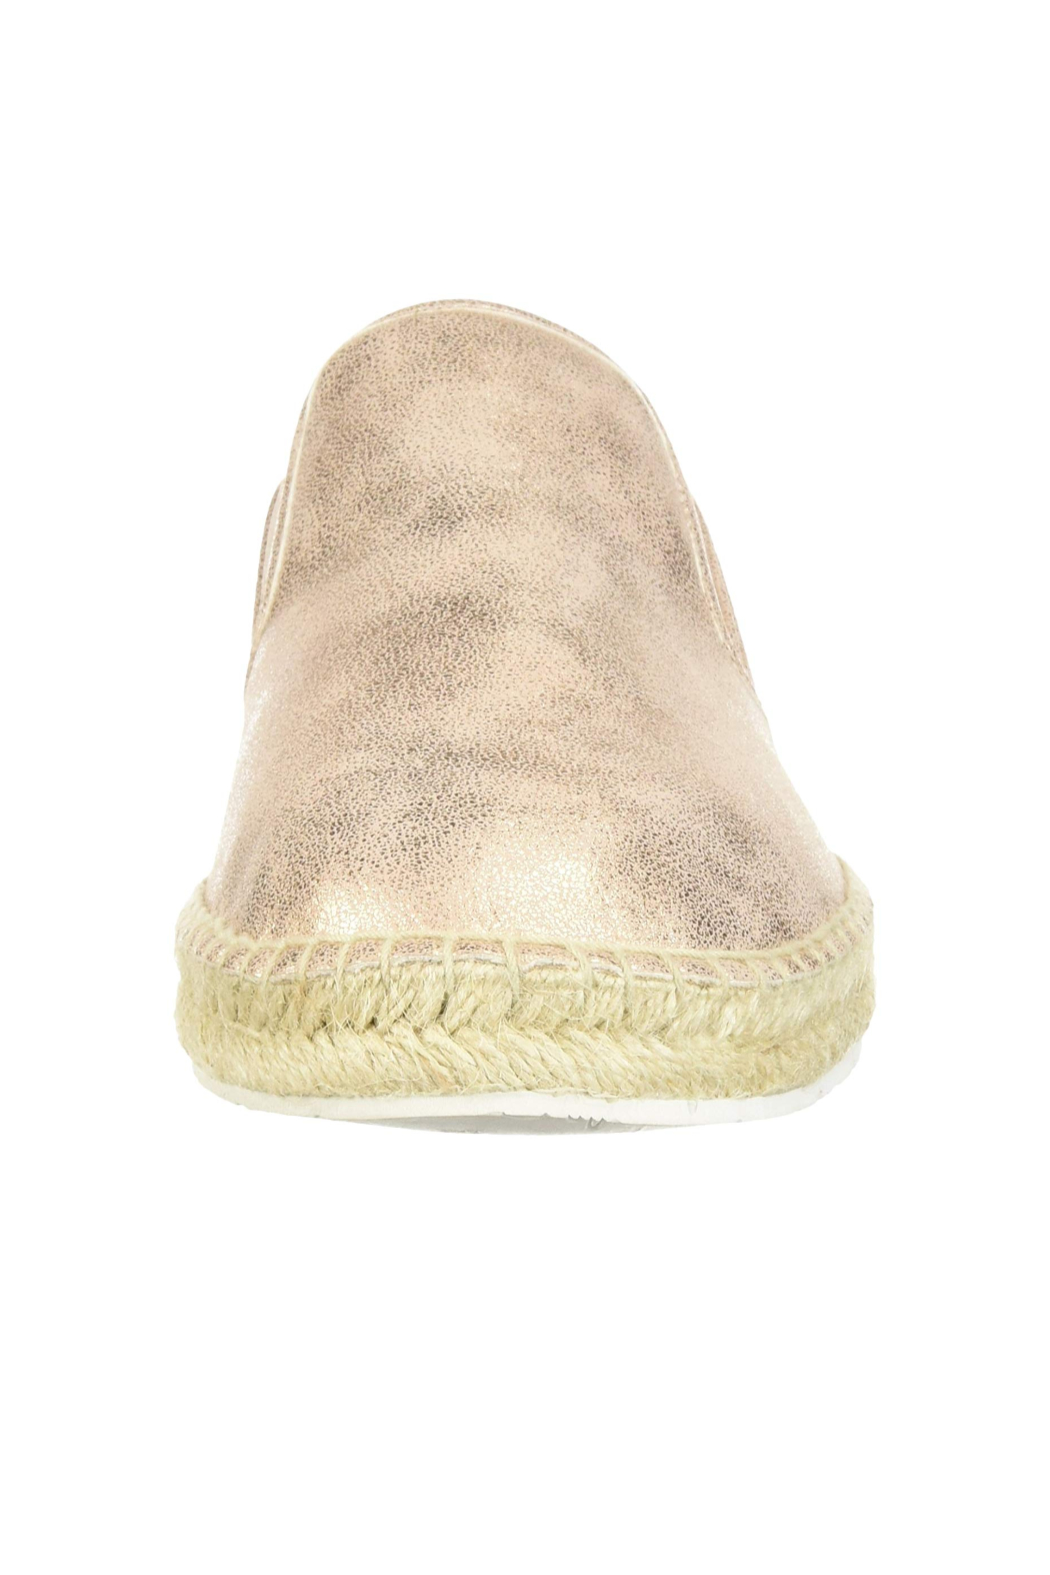 BC Footwear House Of Mirrors Espadrille - Front Full Image